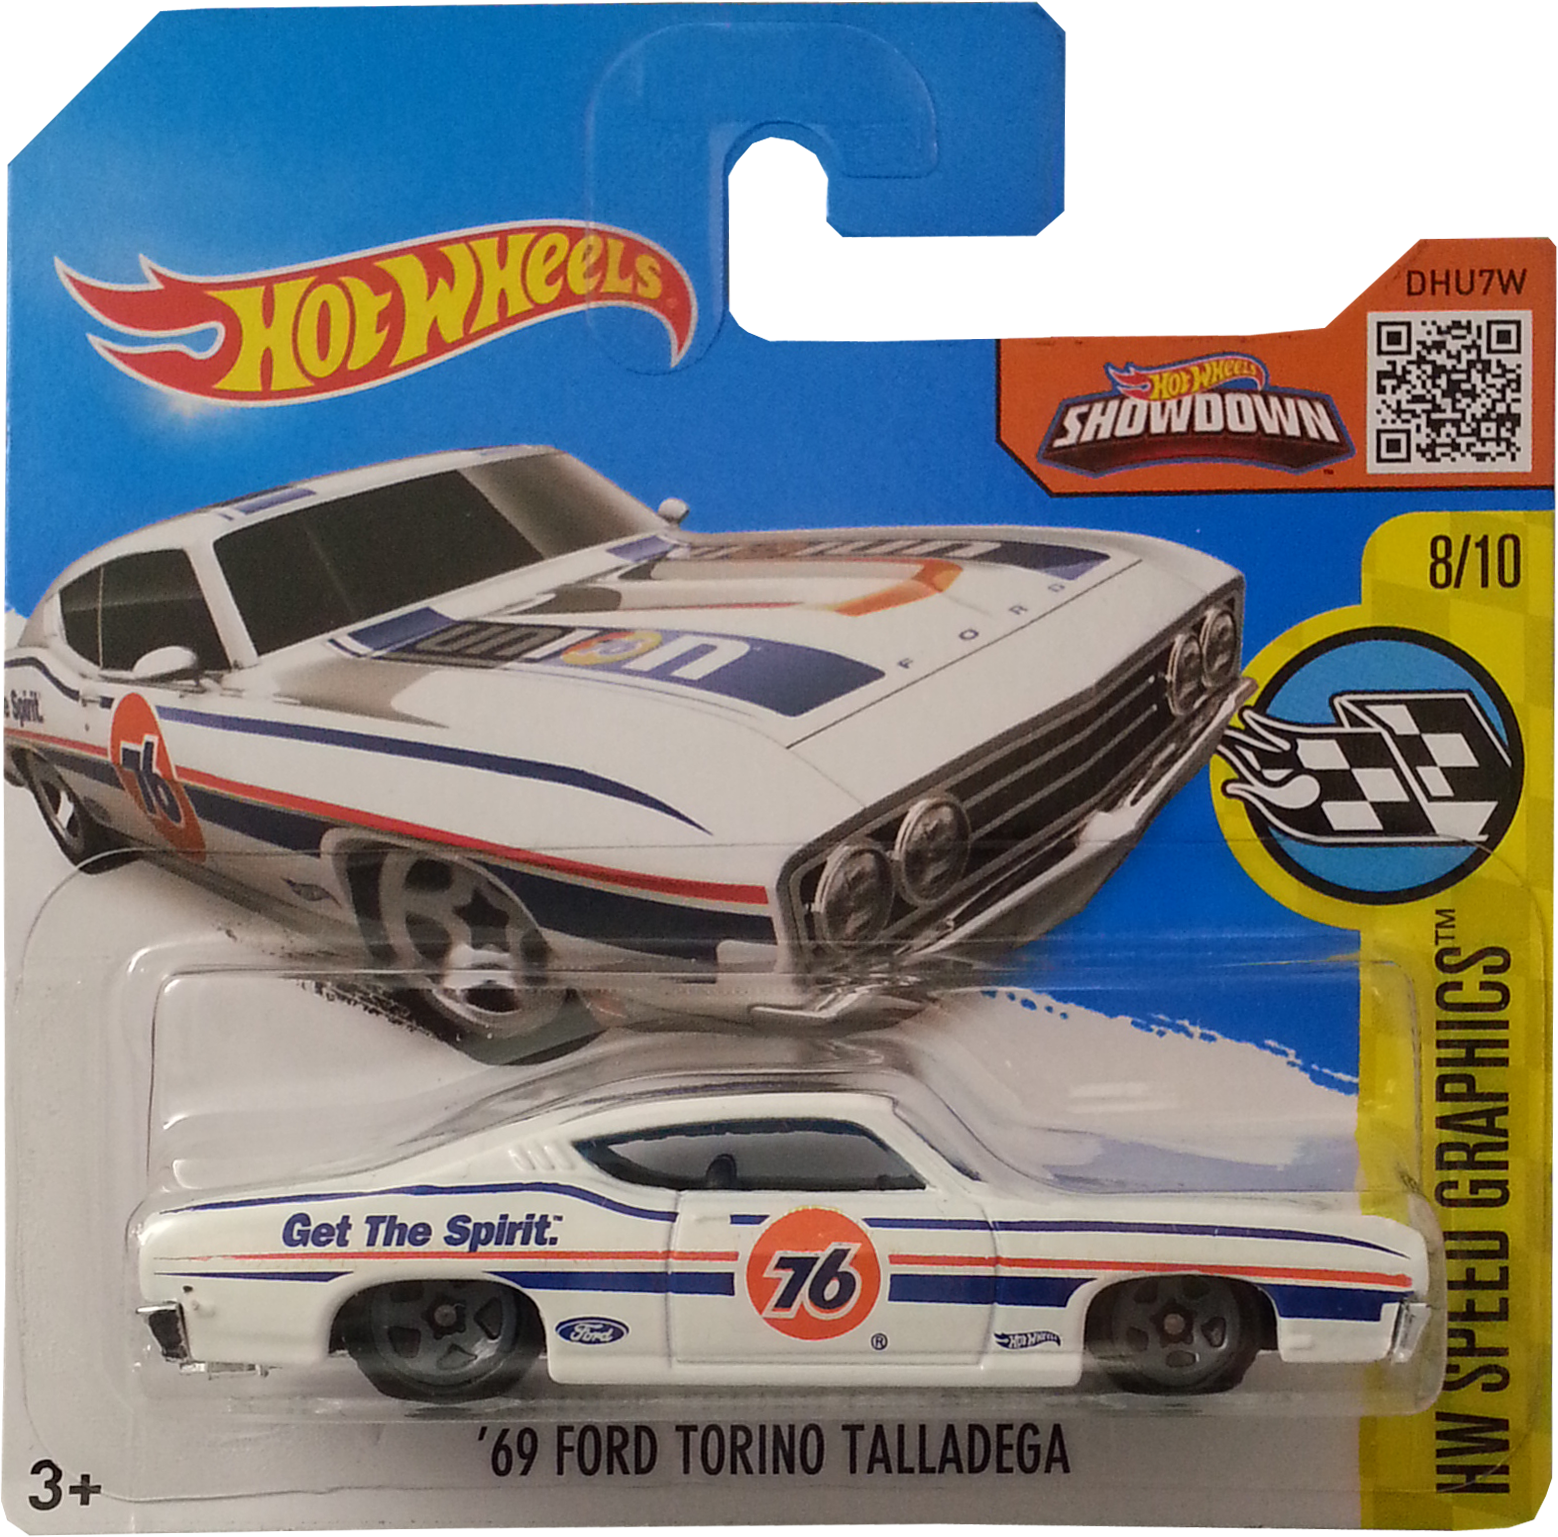 69 ford torino talladega package front